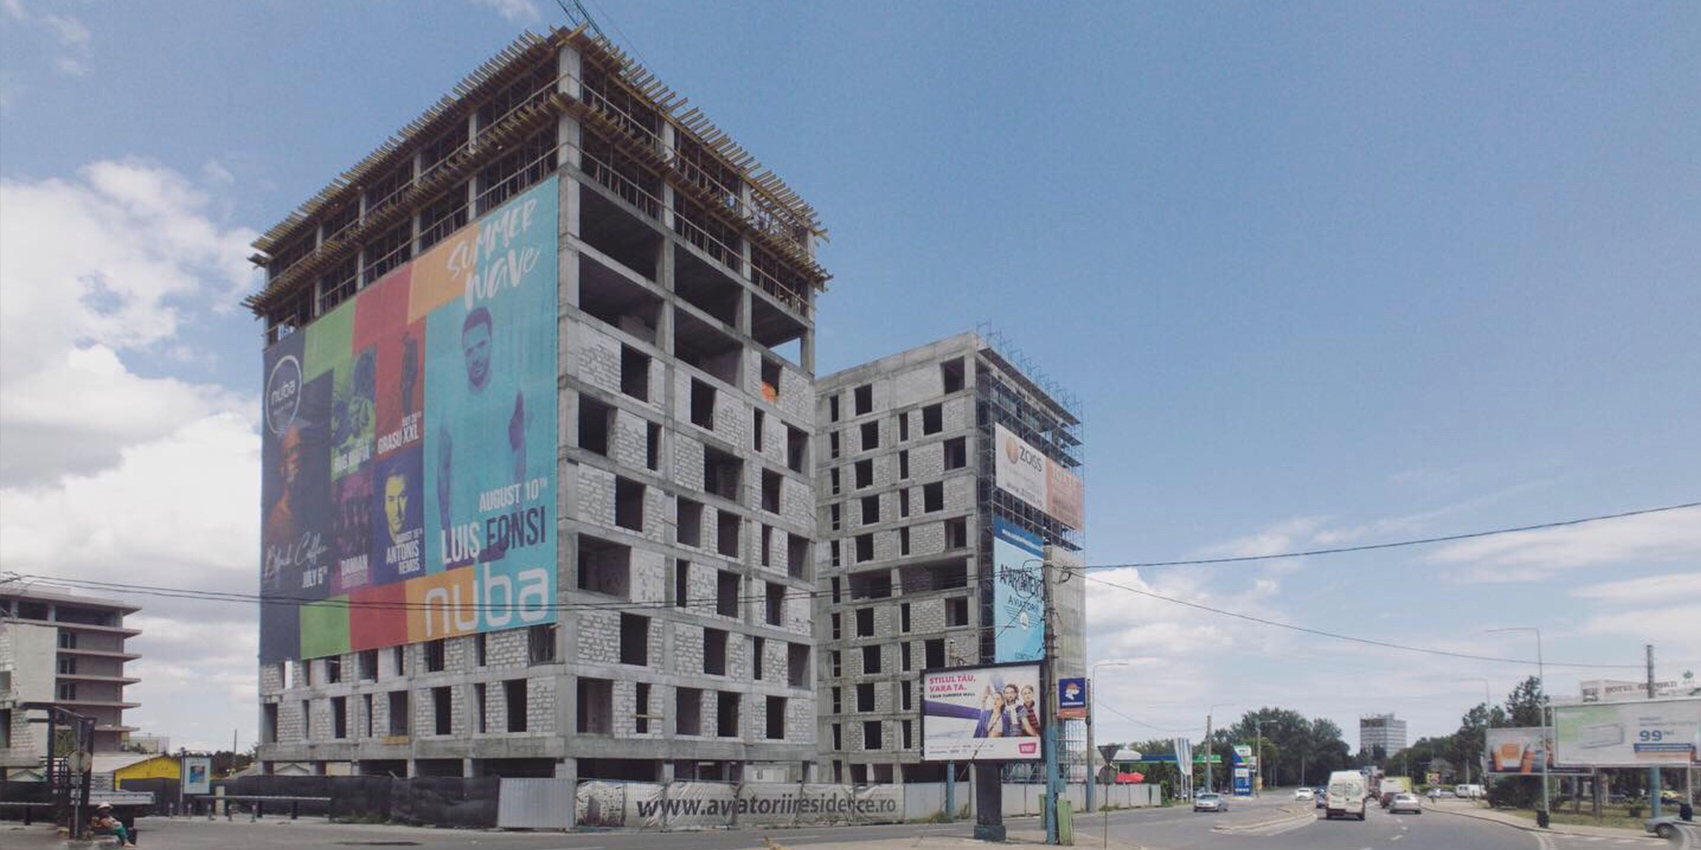 AVIATORII RESIDENCE construction reached the 10th floor - More details coming soon!